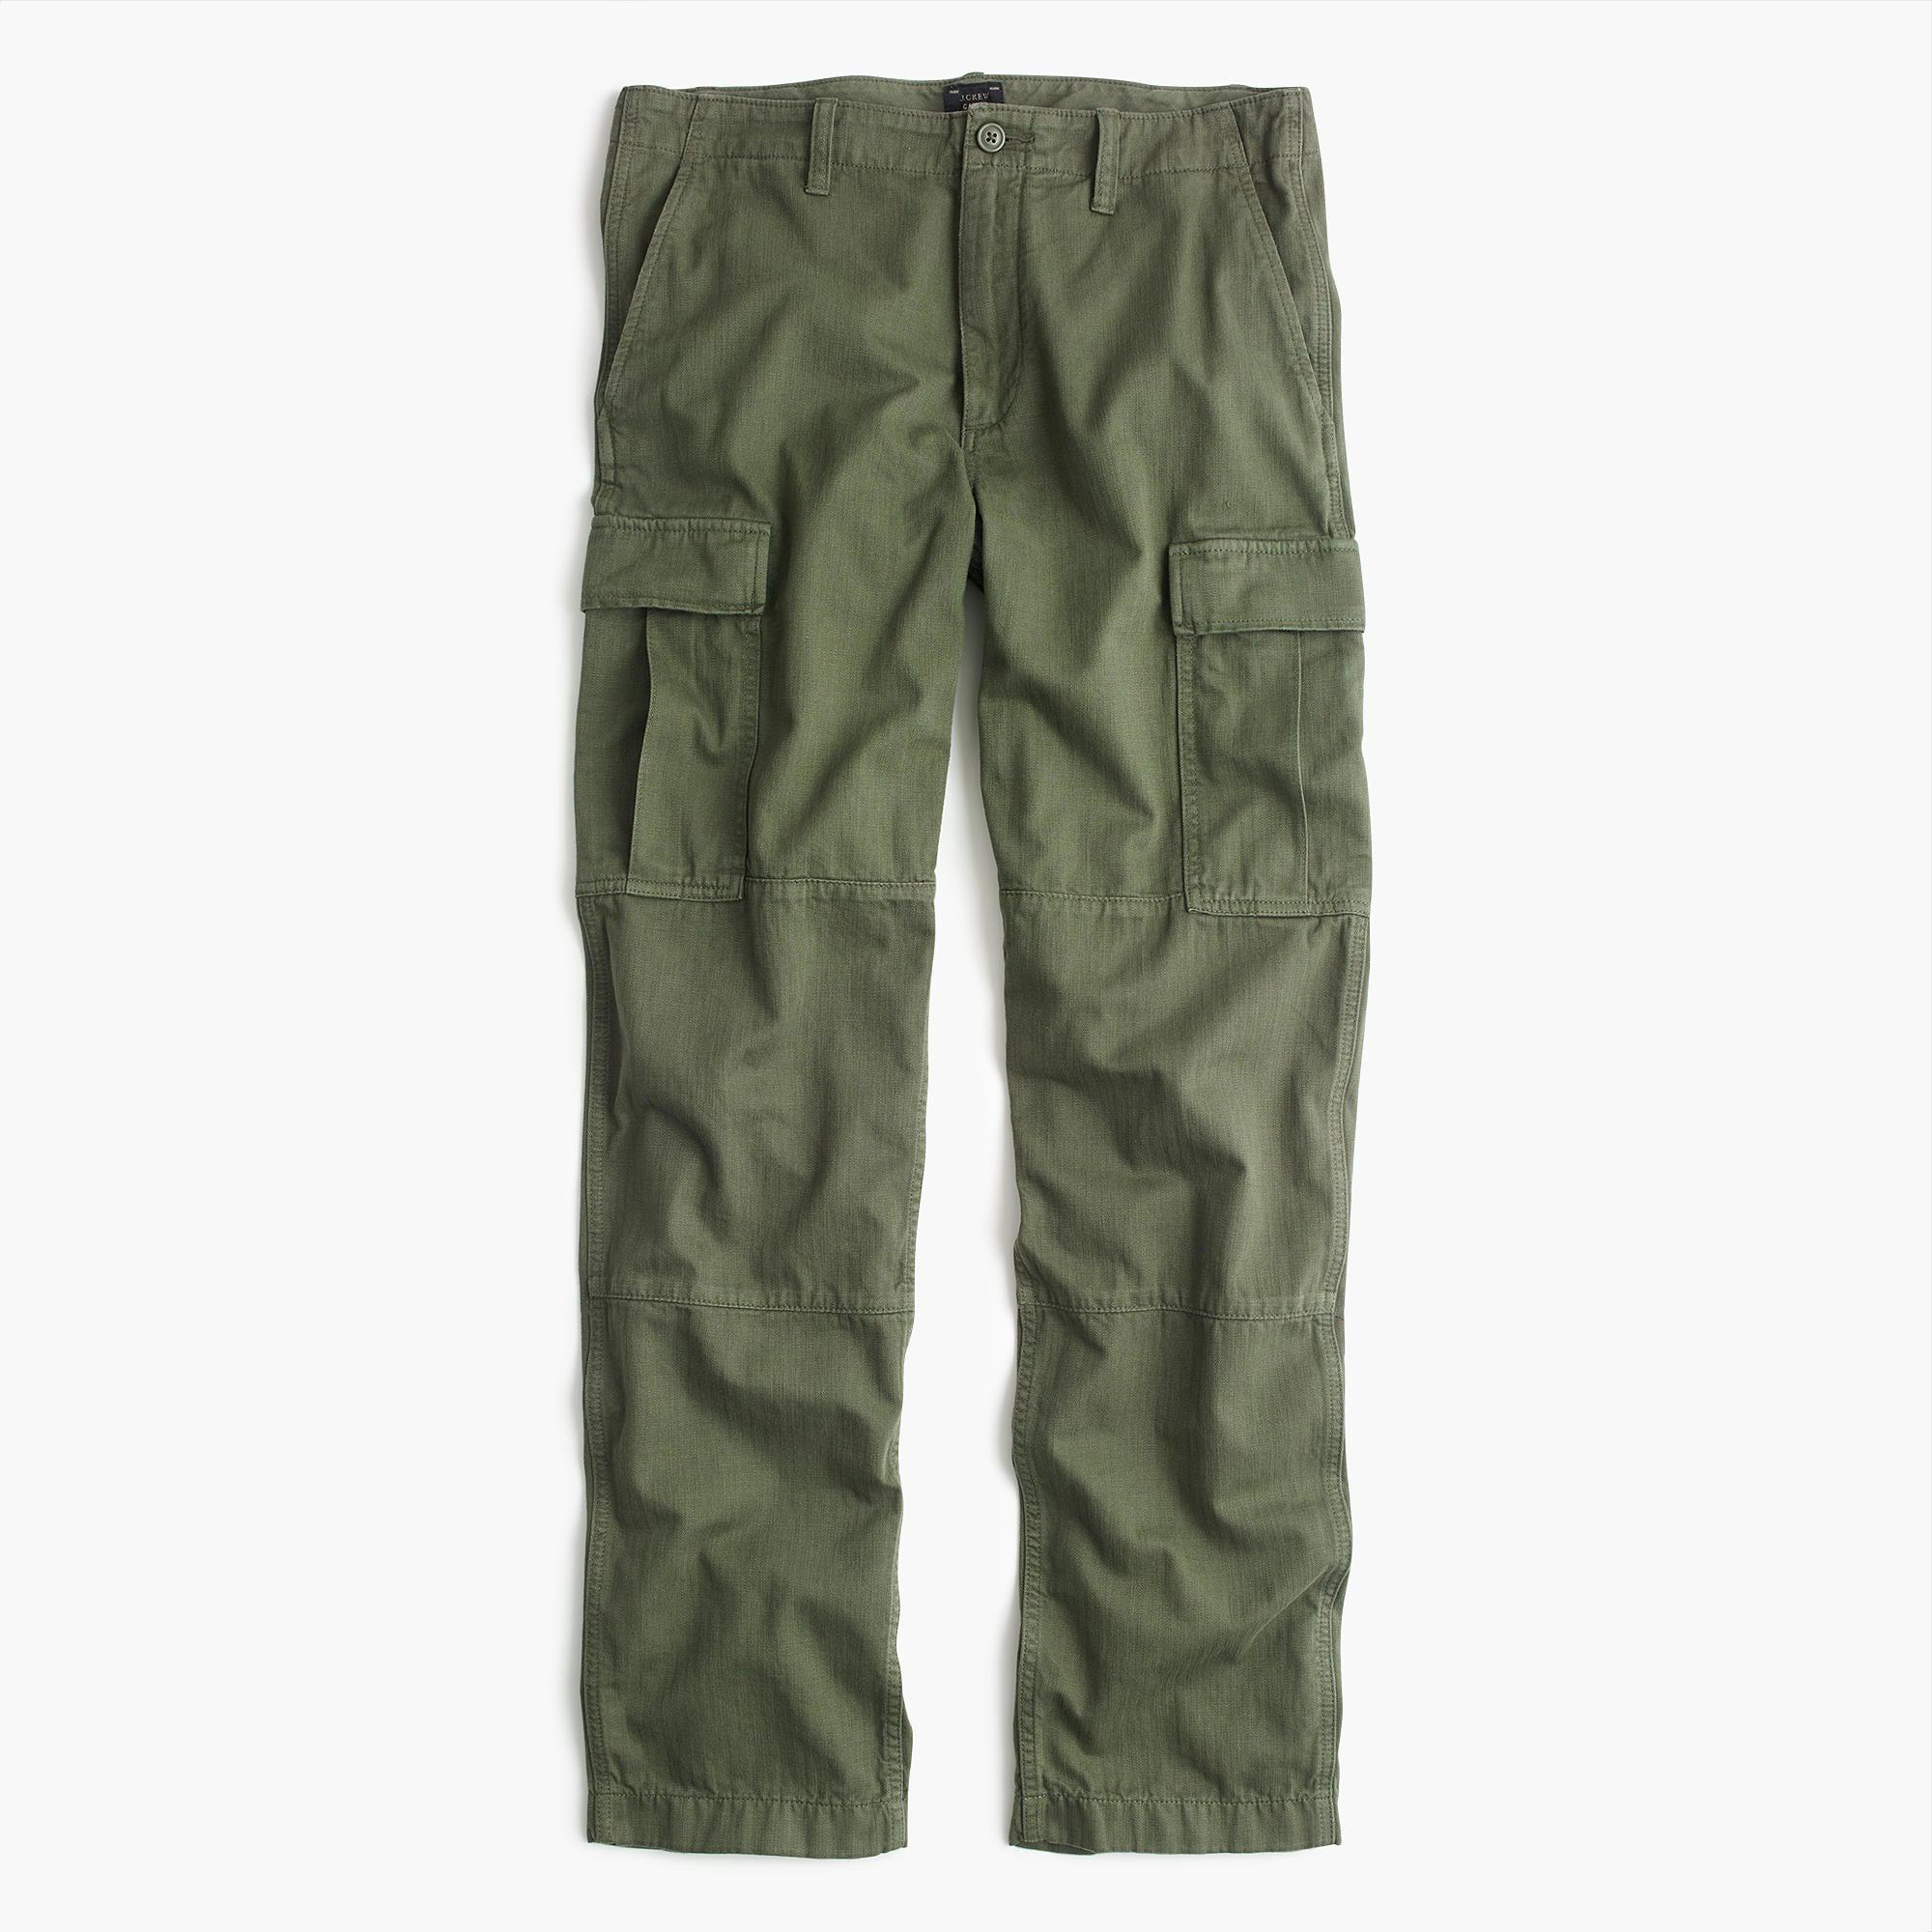 J.Crew Cotton 1040 Athletic-fit Cargo Pant in Olive Green (Green) for Men